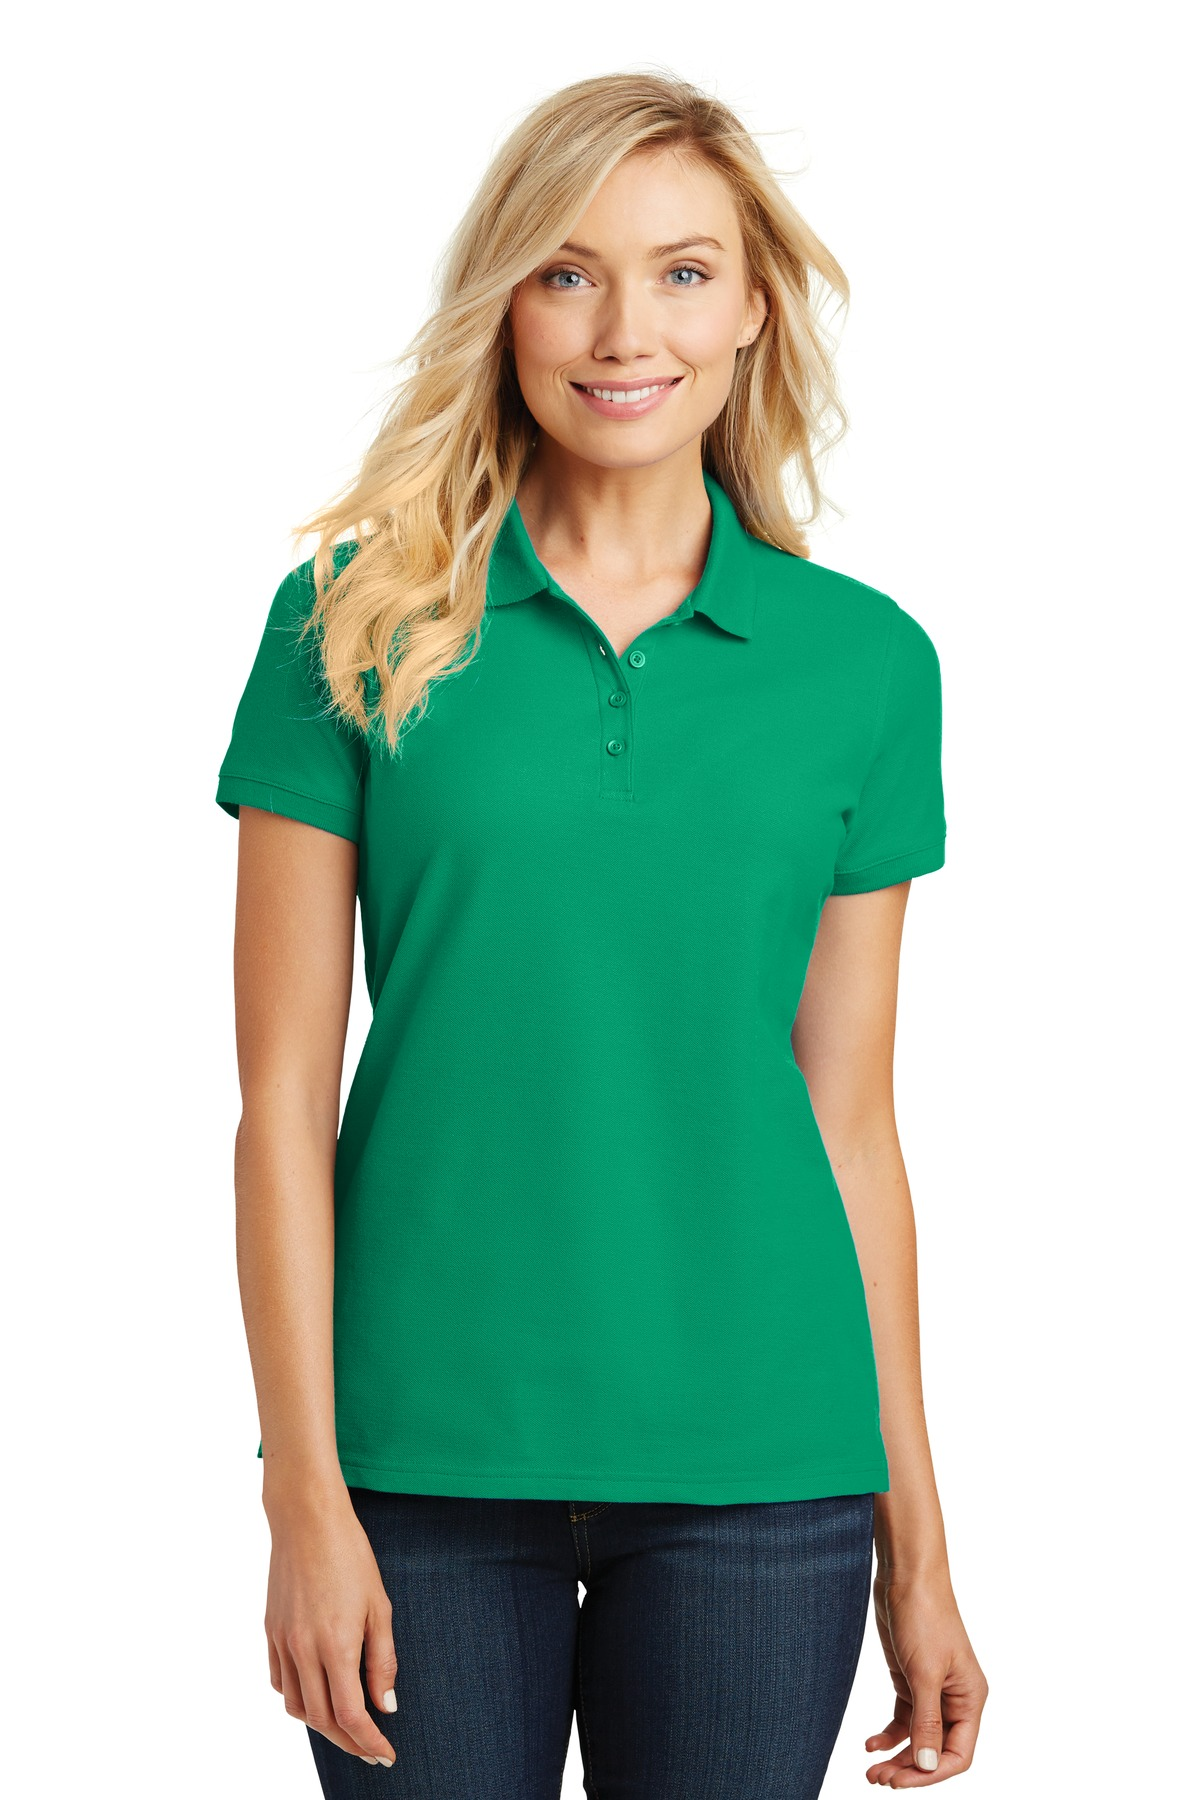 Port Authority ®  Ladies Core Classic Pique Polo. L100 - Bright Kelly Green